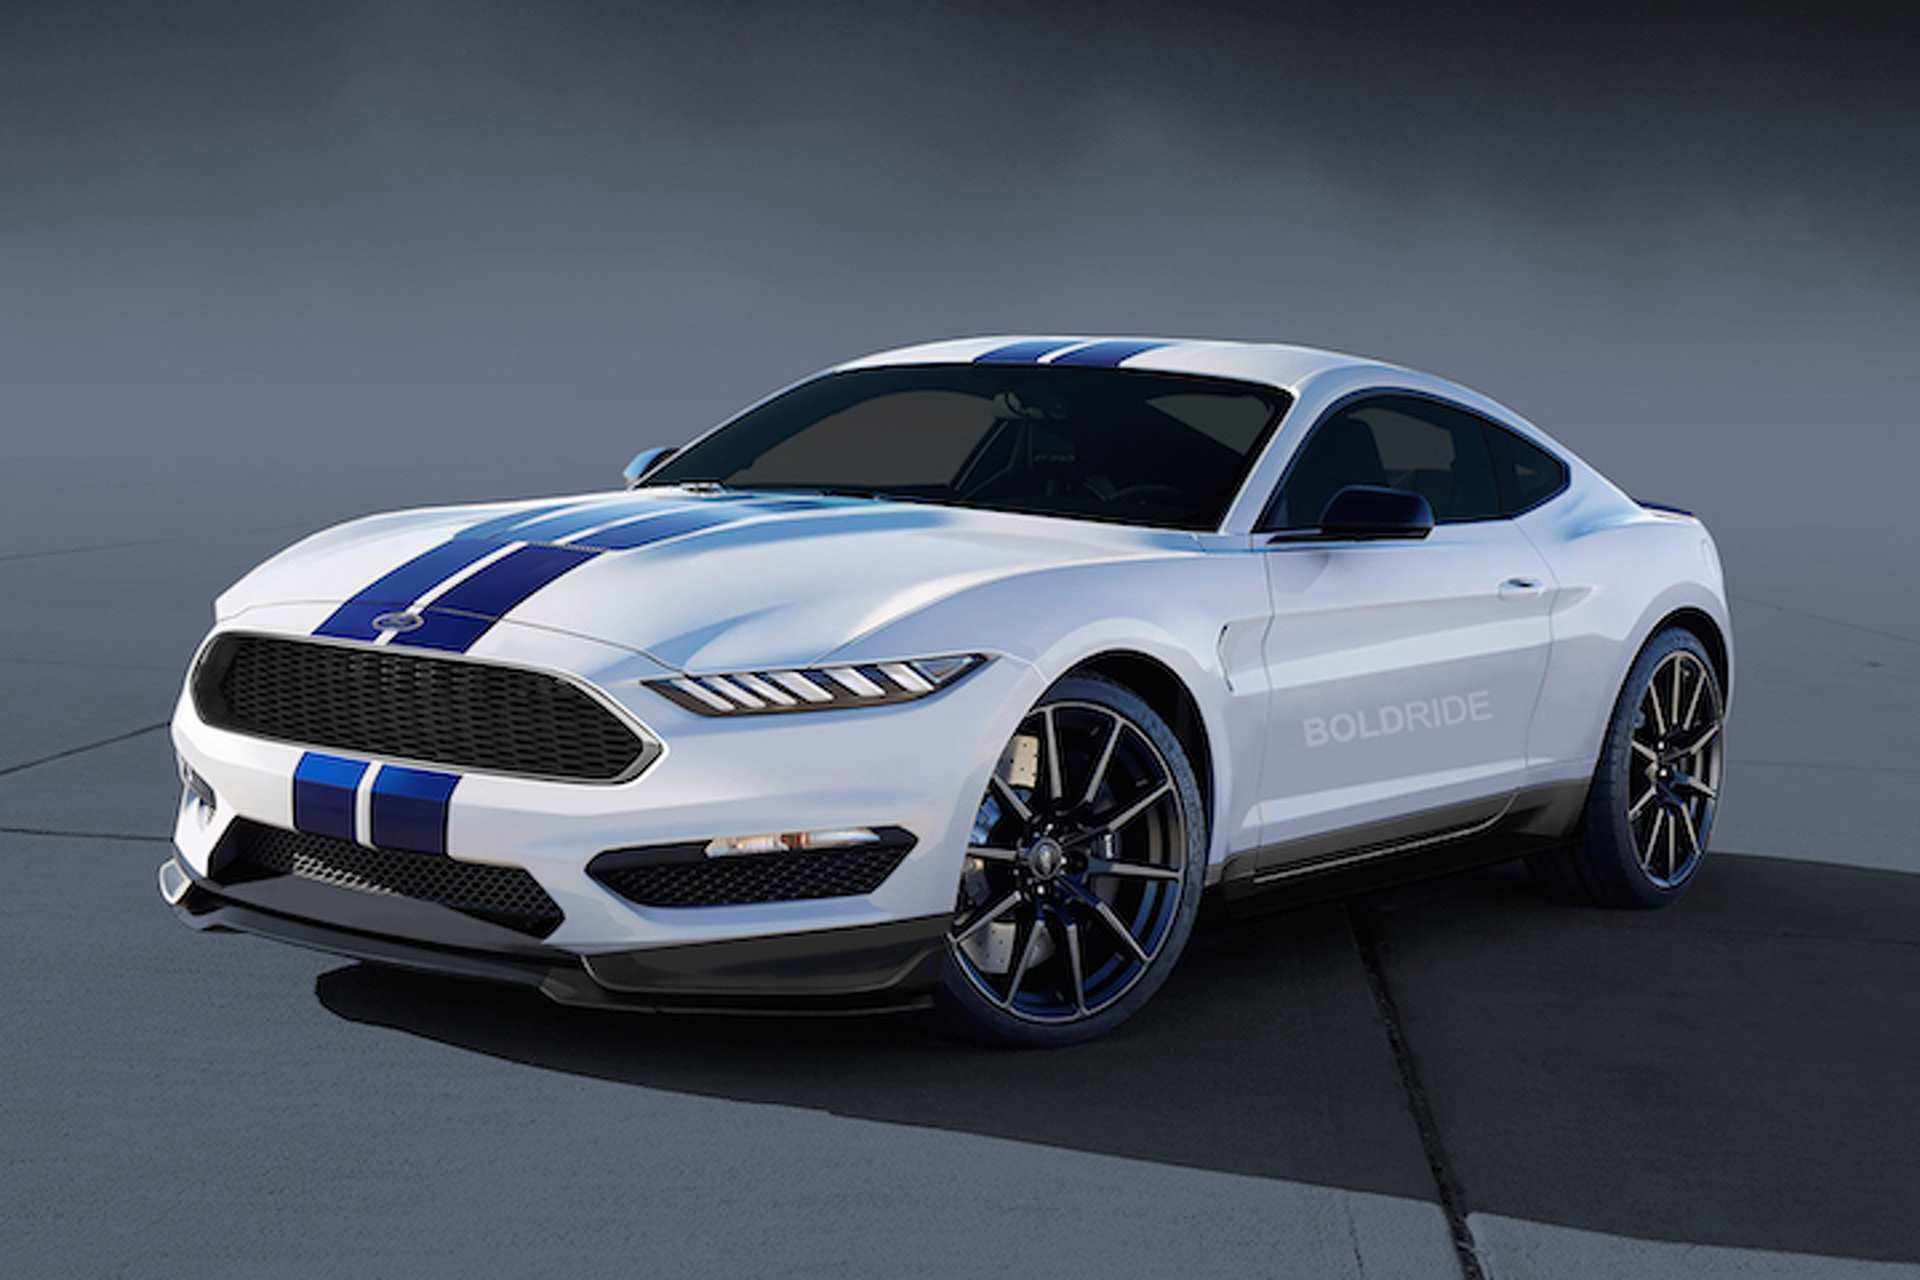 83 Best 2020 Ford Mustang Shelby Gt 350 Price Design And Review